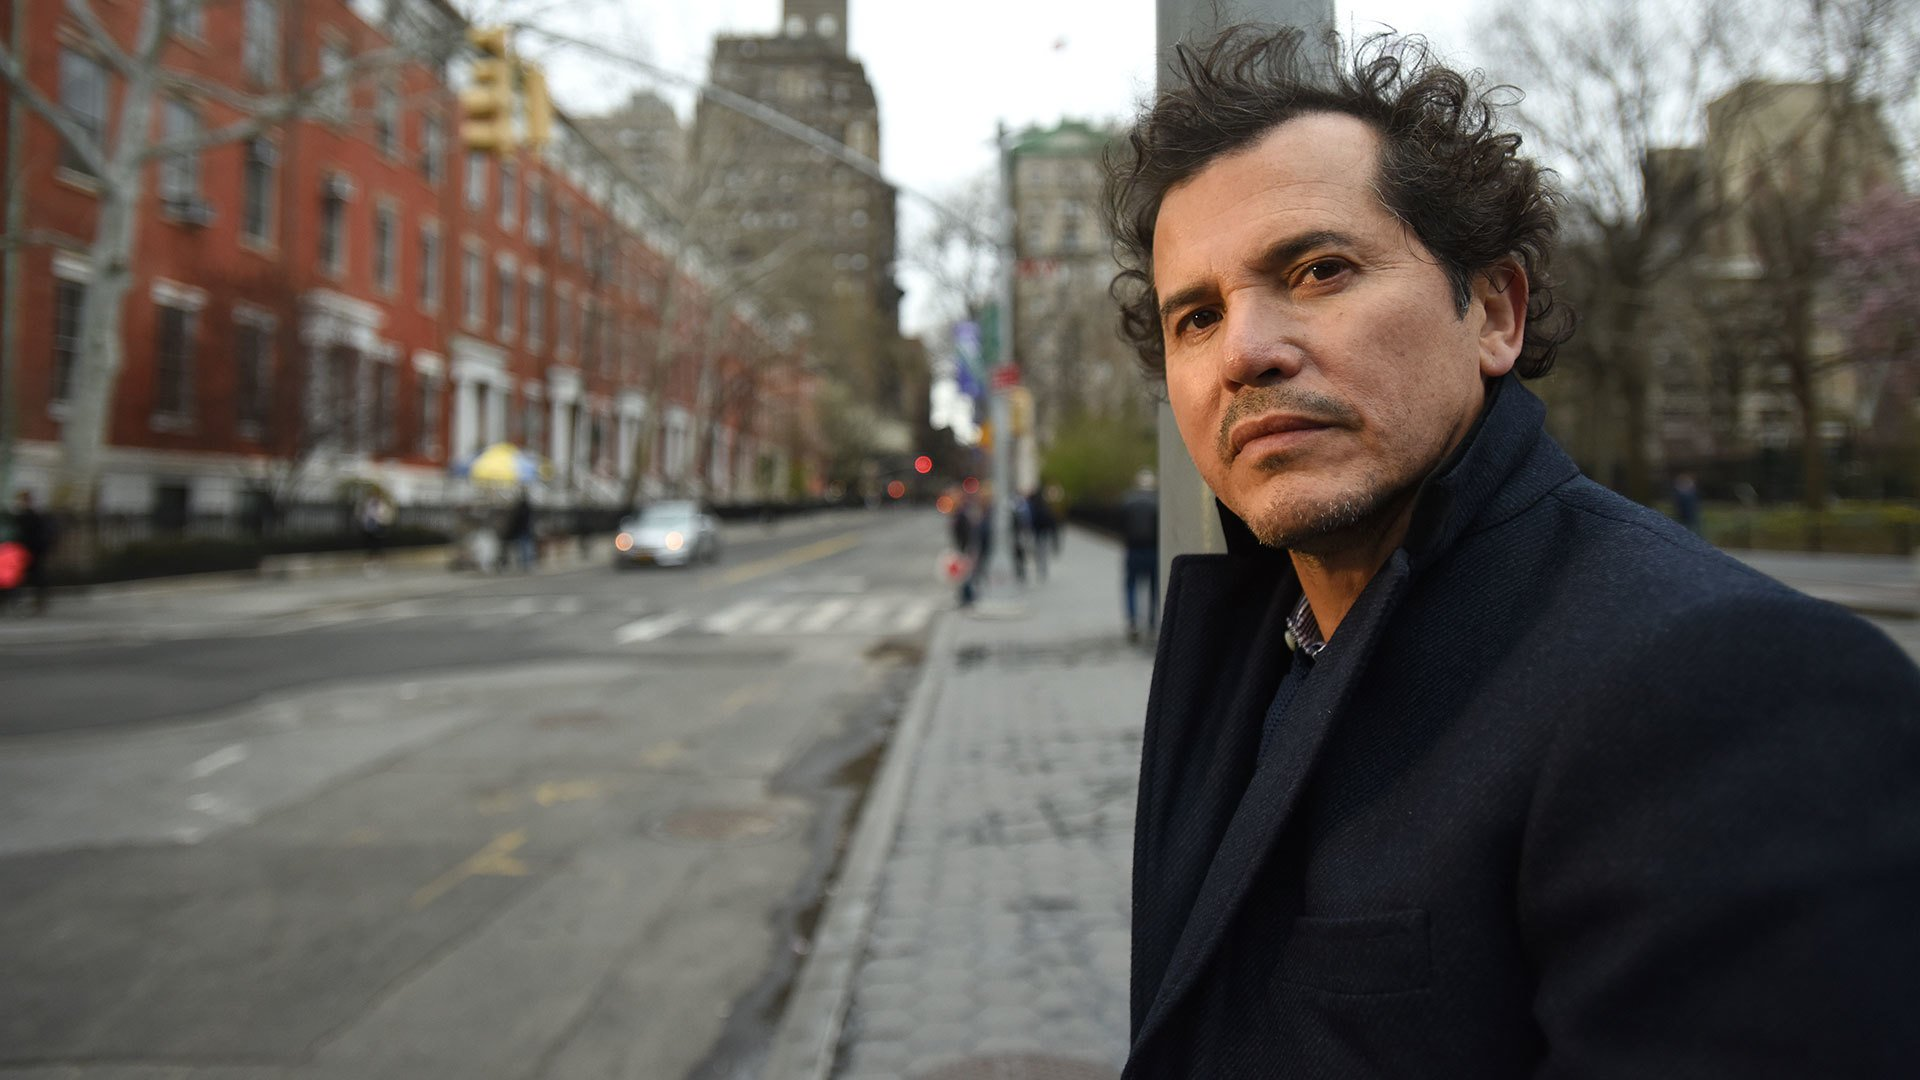 John Leguizamo on the street